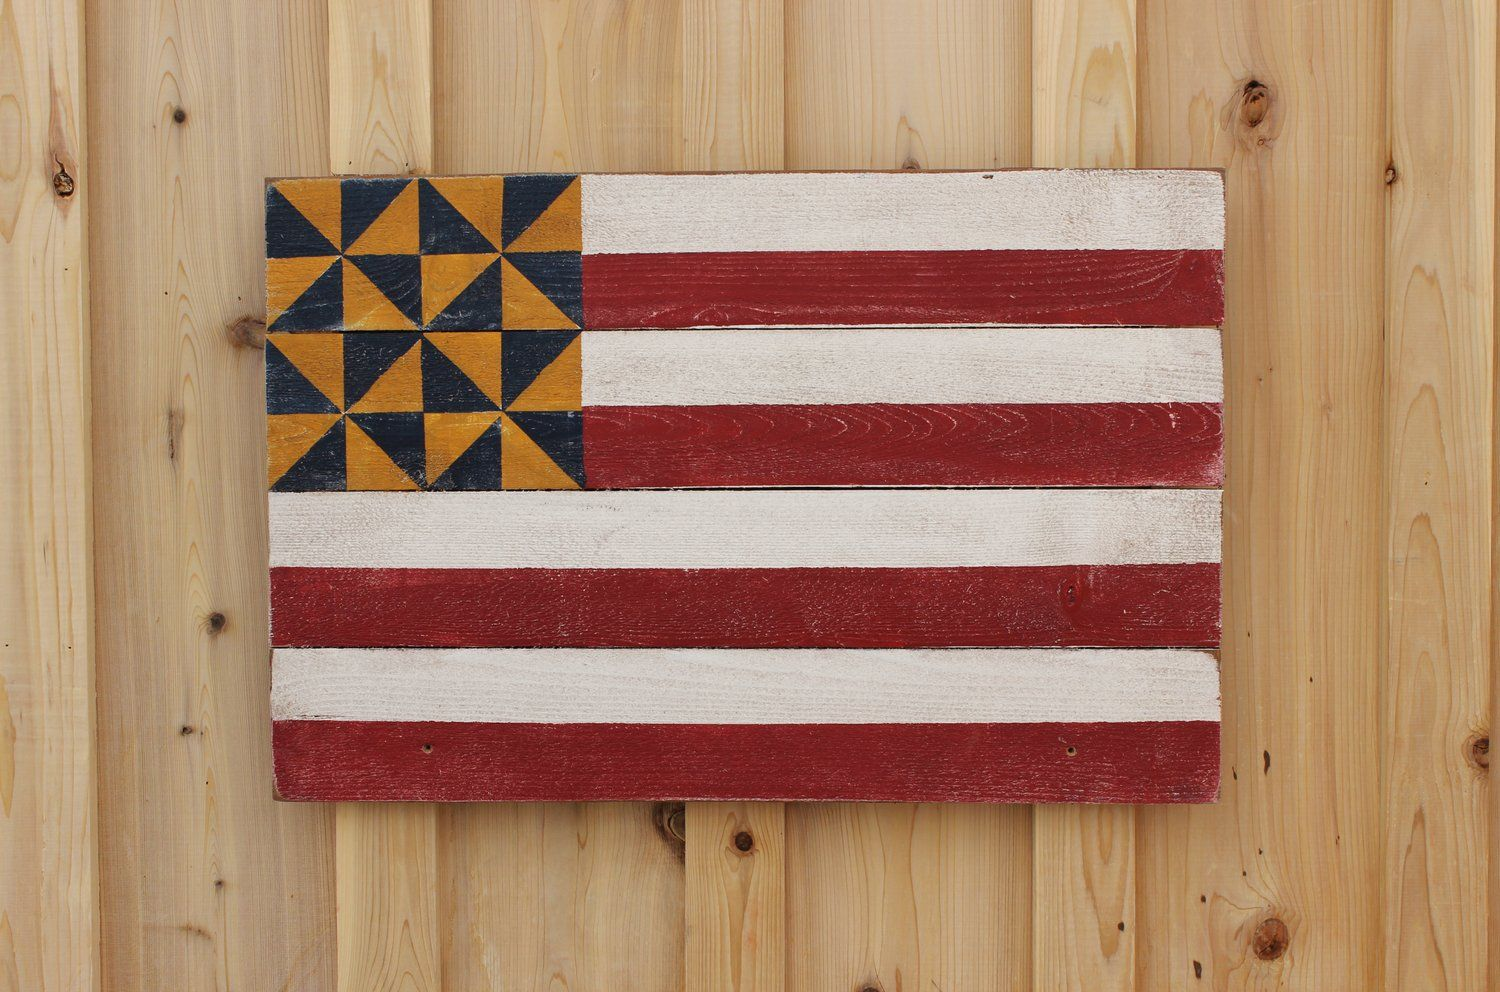 Image Of American Flag Barn Quilt With Images Barn Quilt Designs Barn Quilts Barn Quilt